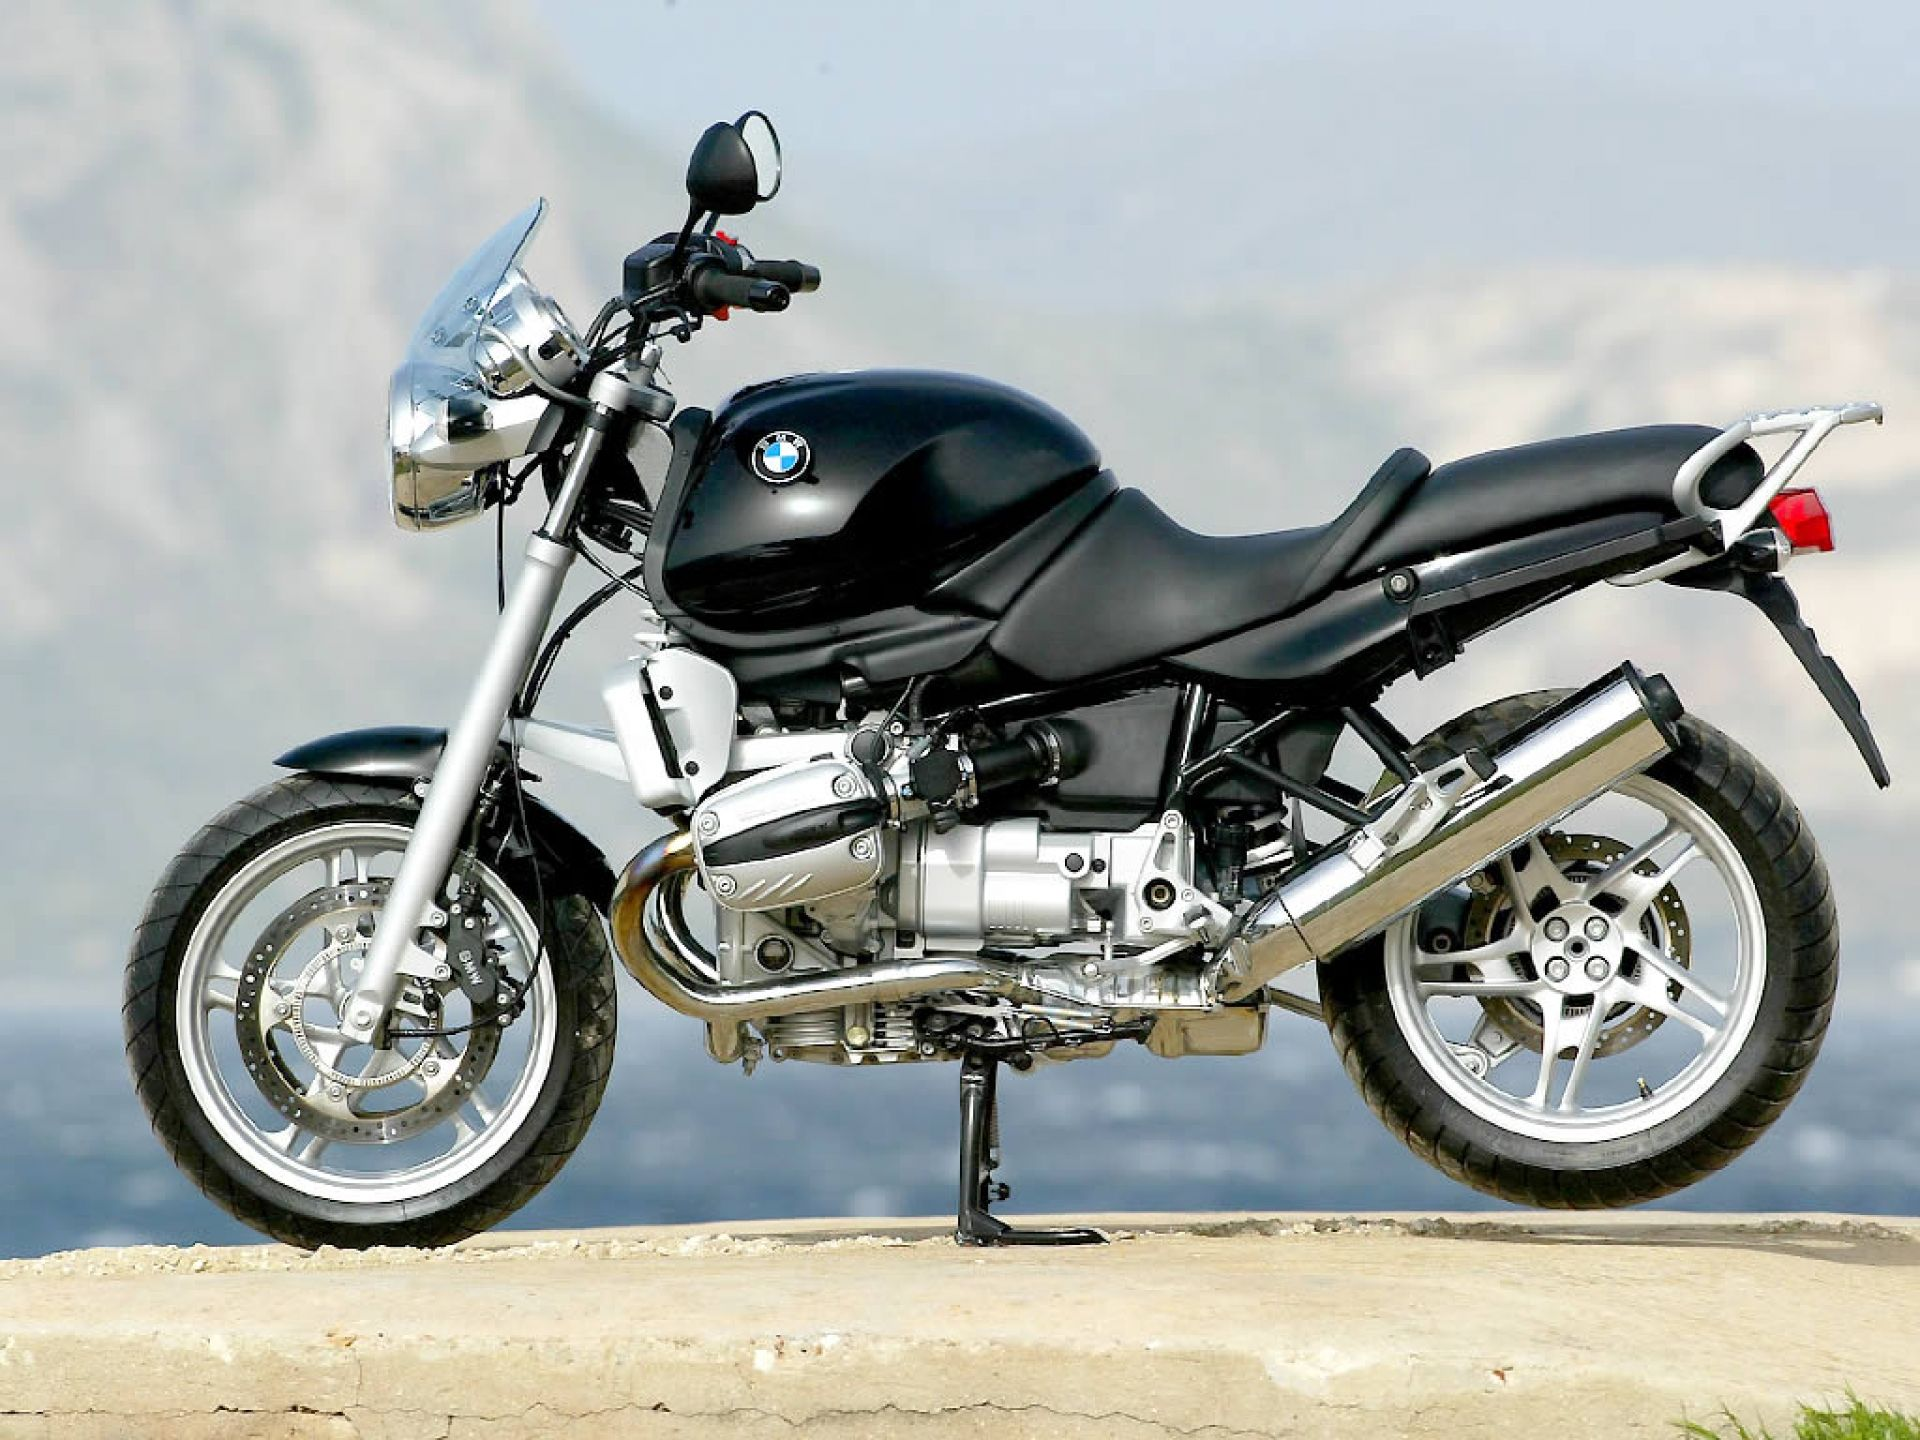 bmw bike models bmw r850r wallpaper bmw motorcycles pinterest bmw bmw motorcycles and bmw. Black Bedroom Furniture Sets. Home Design Ideas